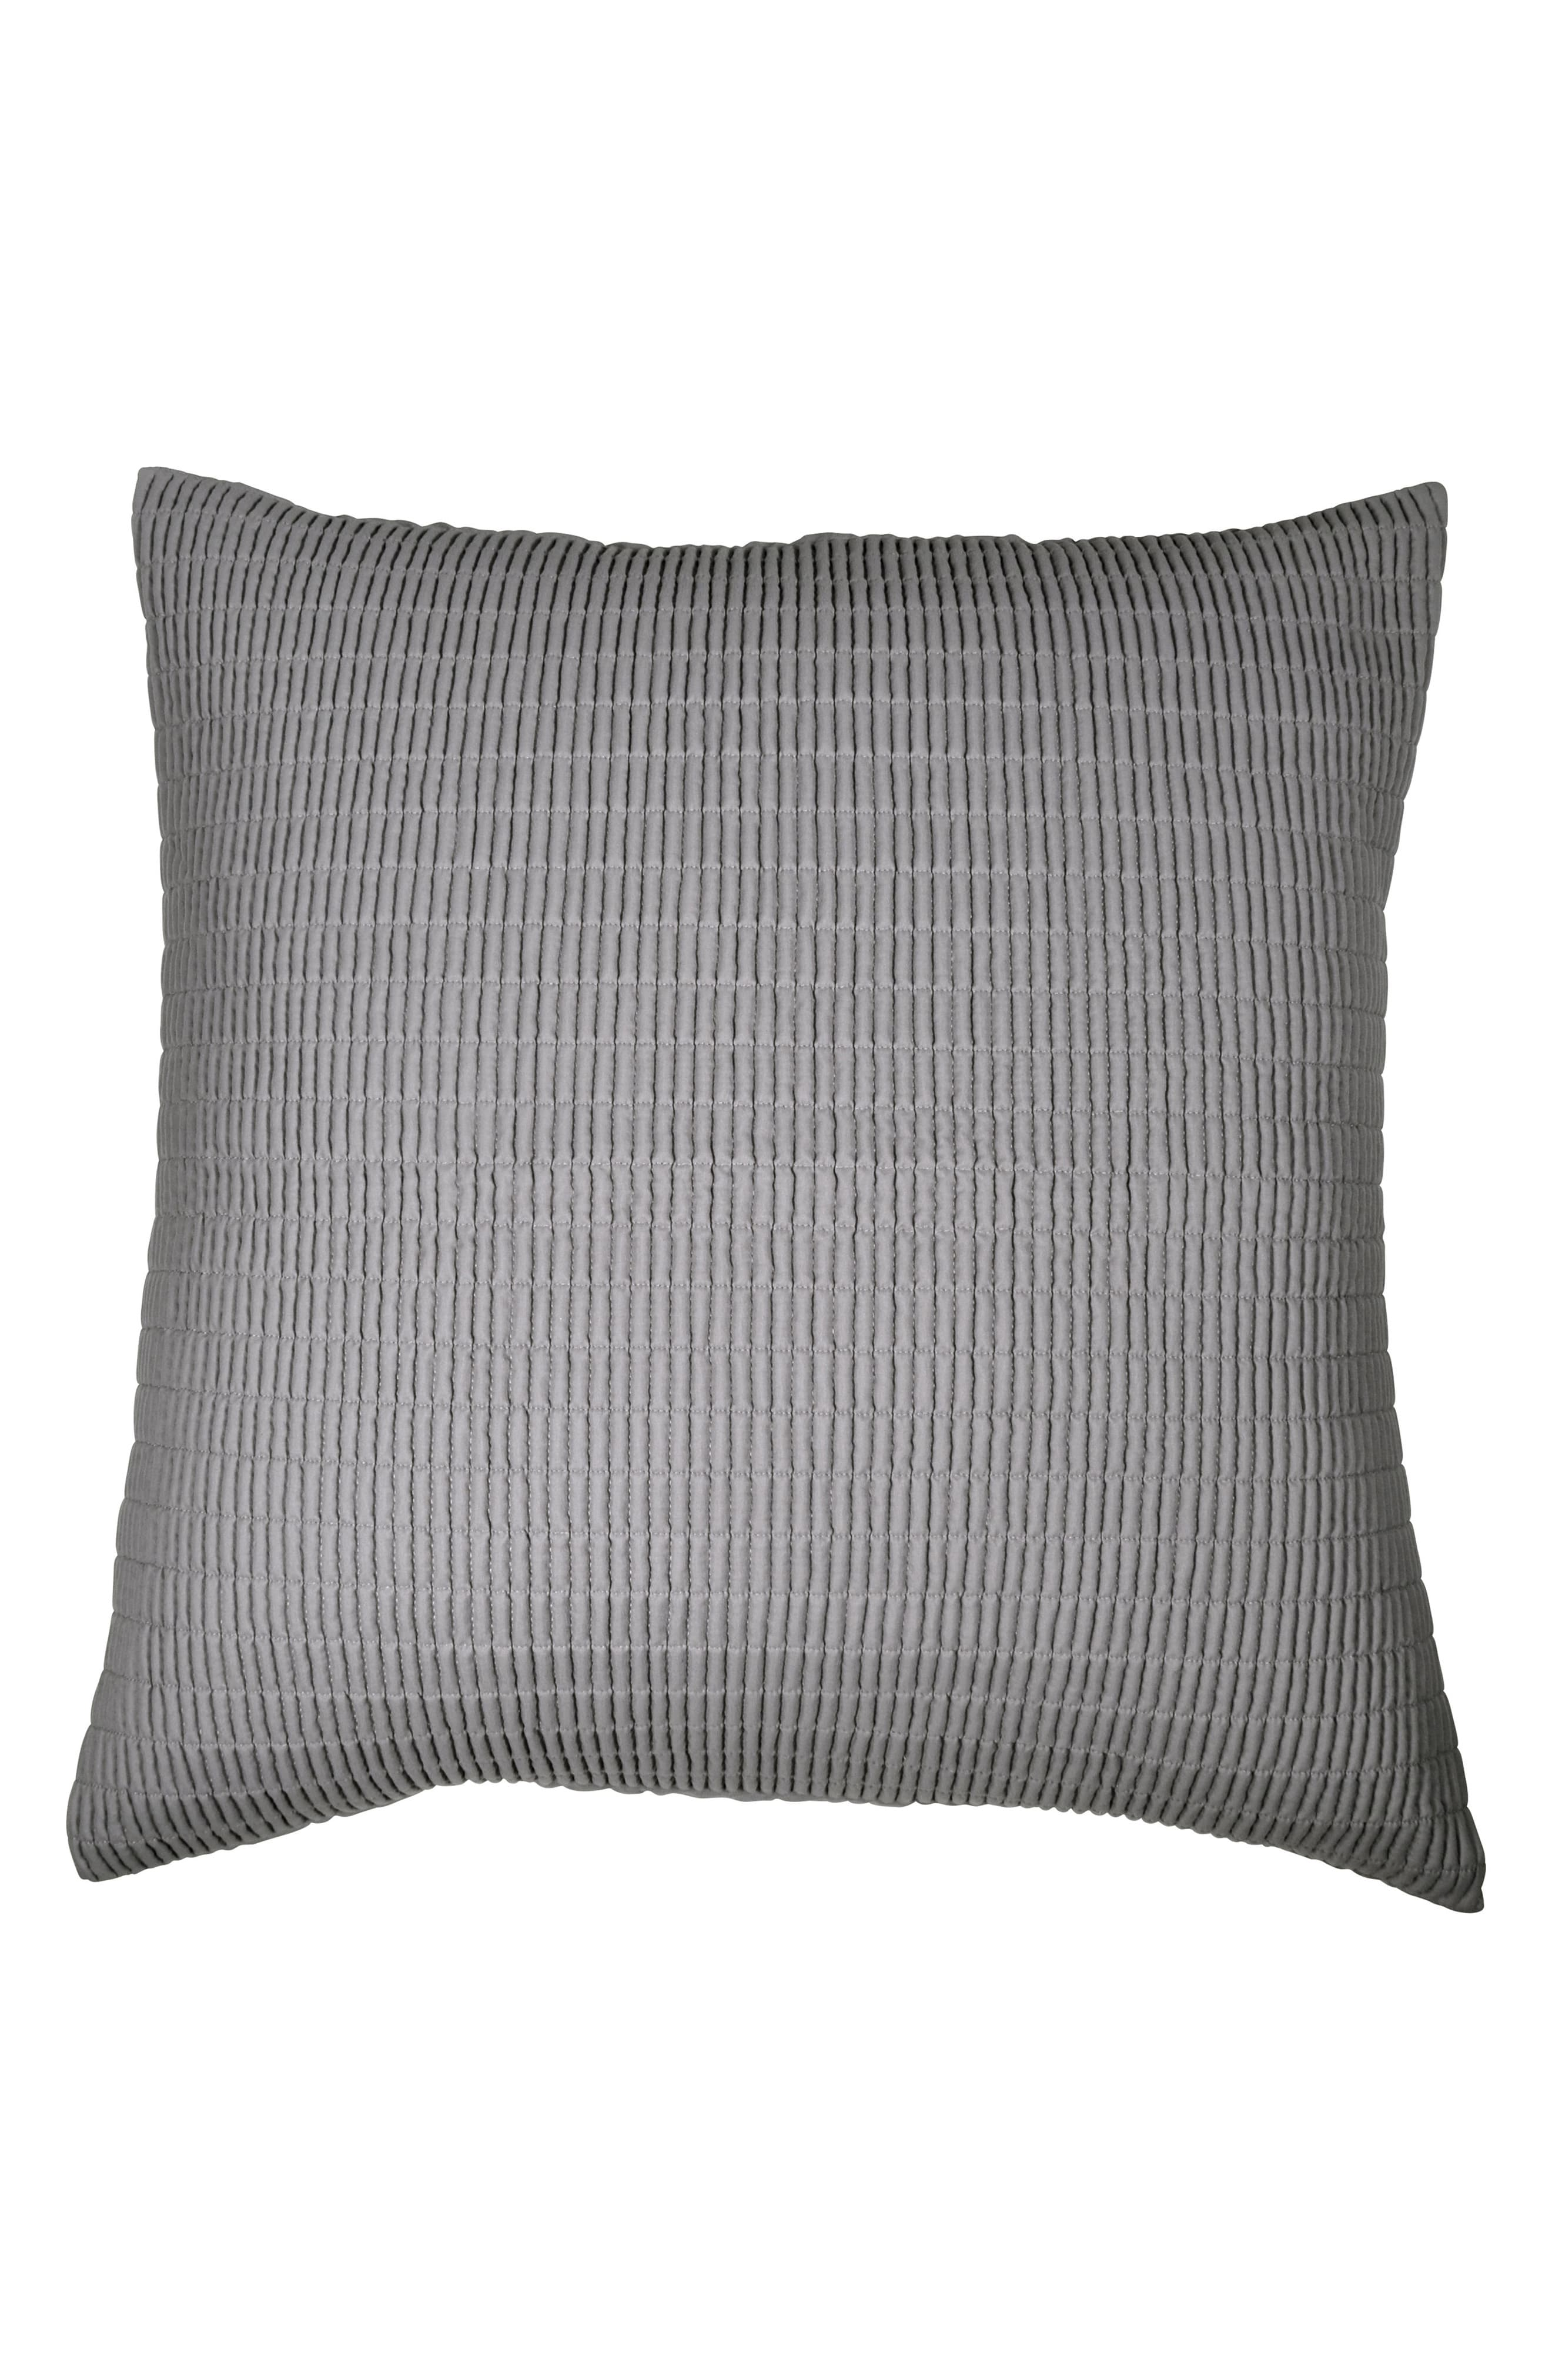 Dkny Quilted Sham Throw Pillows Bed Pillows Pillows